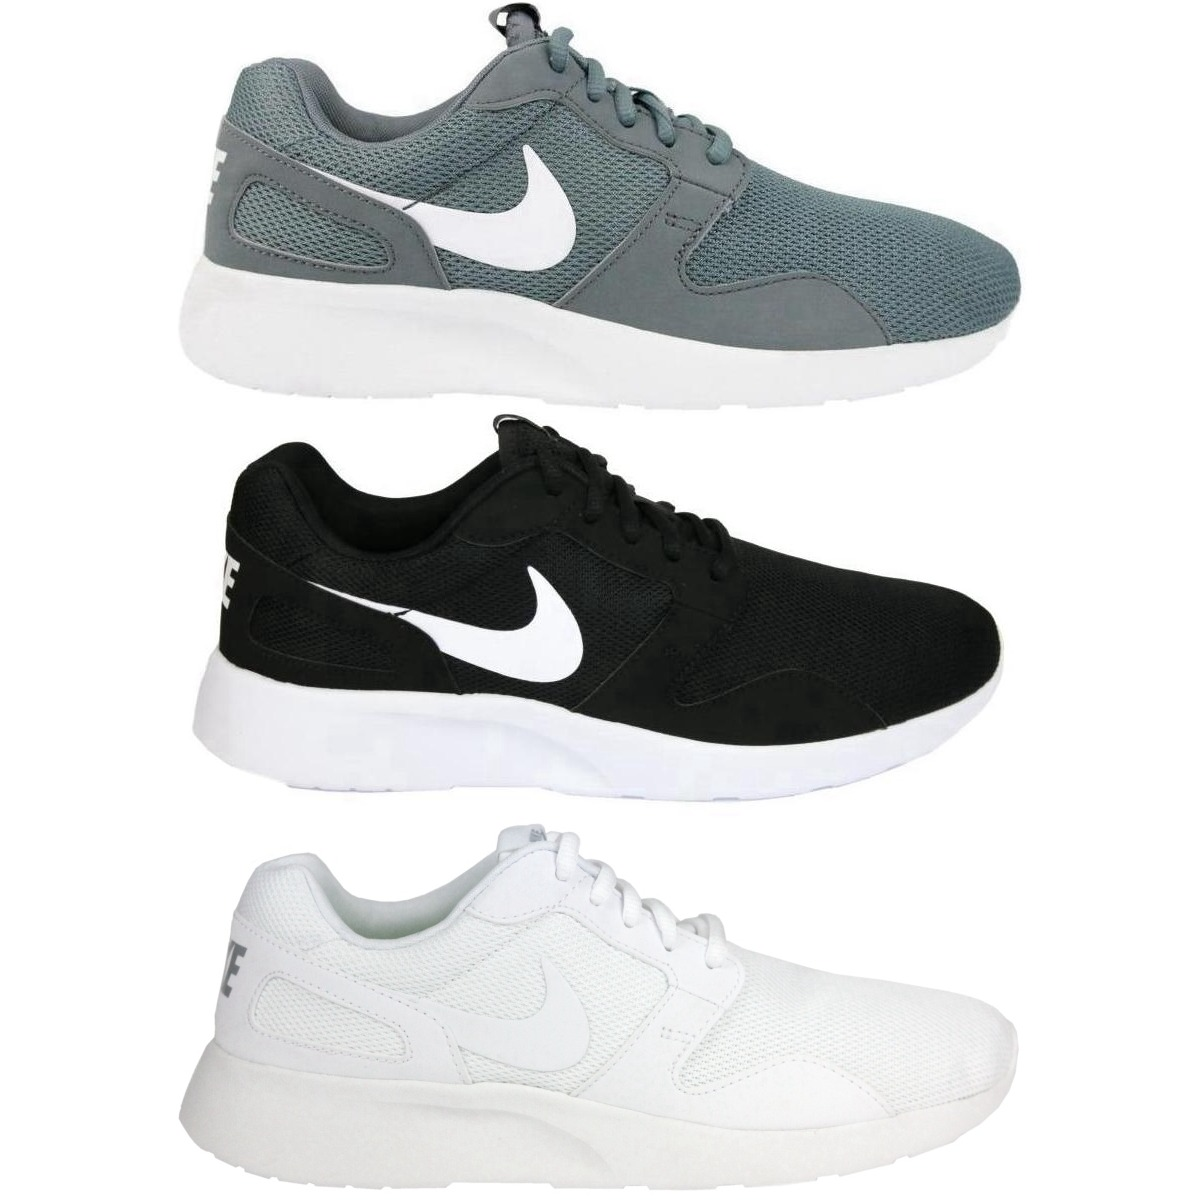 nike kaishi trainers sneakers running shoes sport shoes. Black Bedroom Furniture Sets. Home Design Ideas